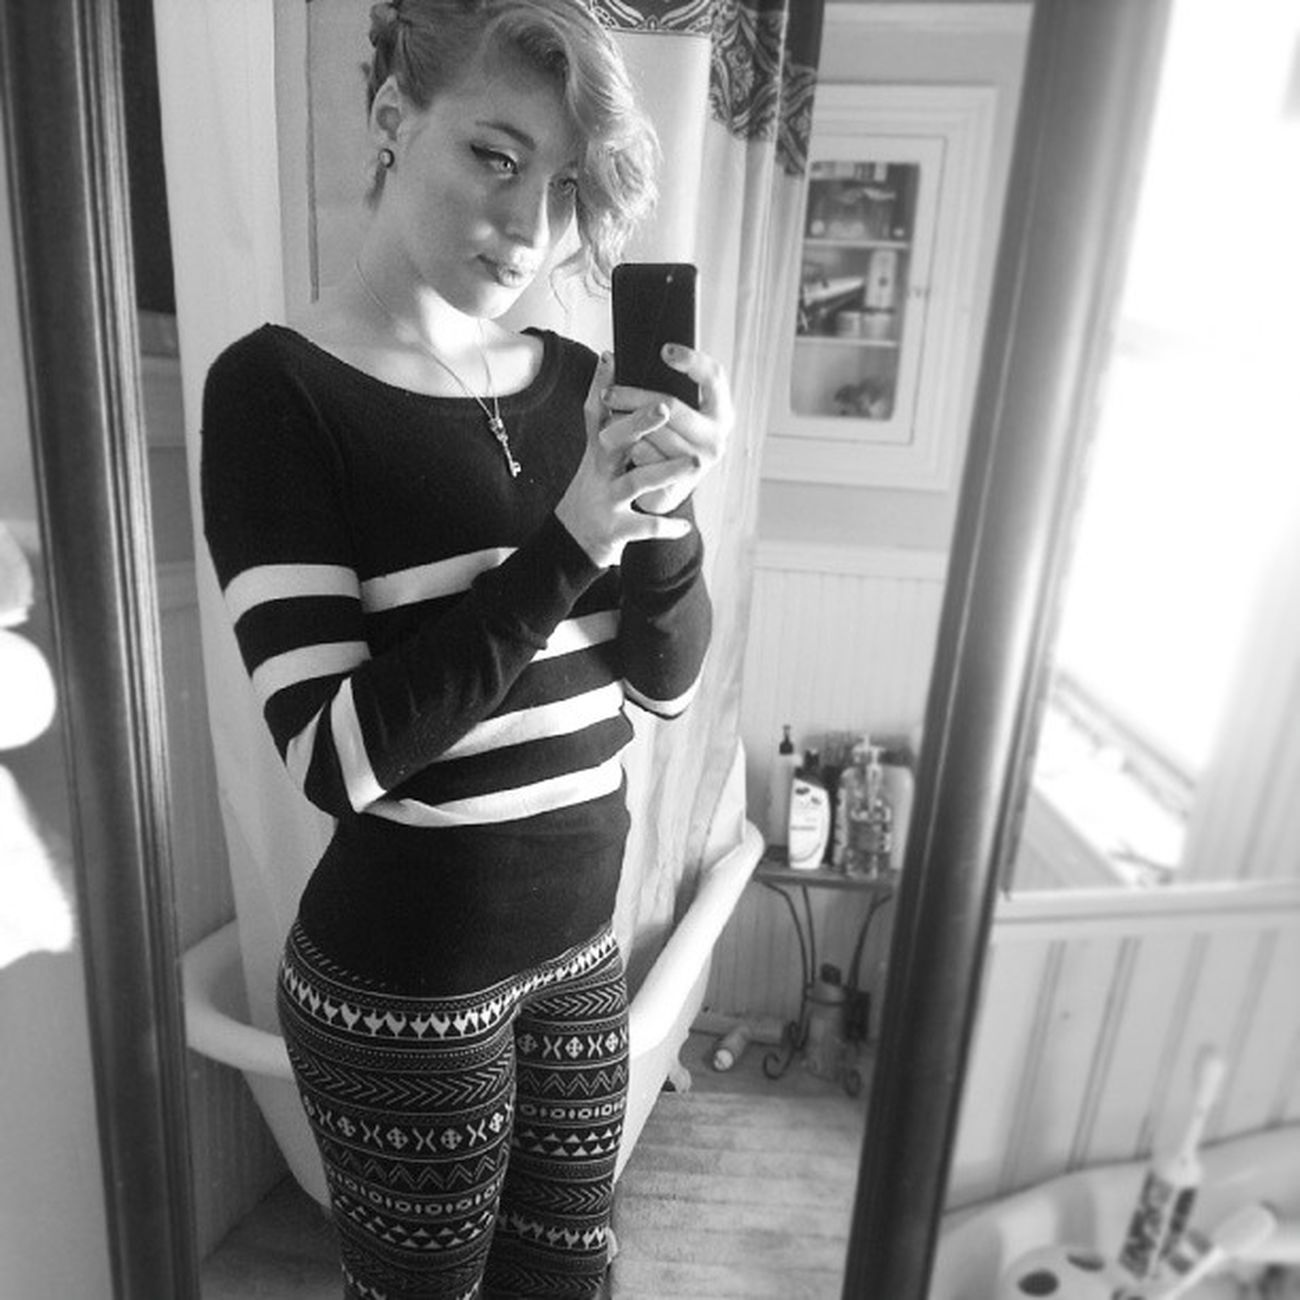 I can't promise that things won't be broken, but I swear that I will never leave. Sleepingwithsirens Sws Unf Thefeels blackandwhite bw ootd leggings patterns stripes sweater sweaterweather finally girlswithplugs plugs plugsnotdrugs classy selfie curves tistheseasontocuddle cuddleweather happy unf porcelain vixen fox lol kbye